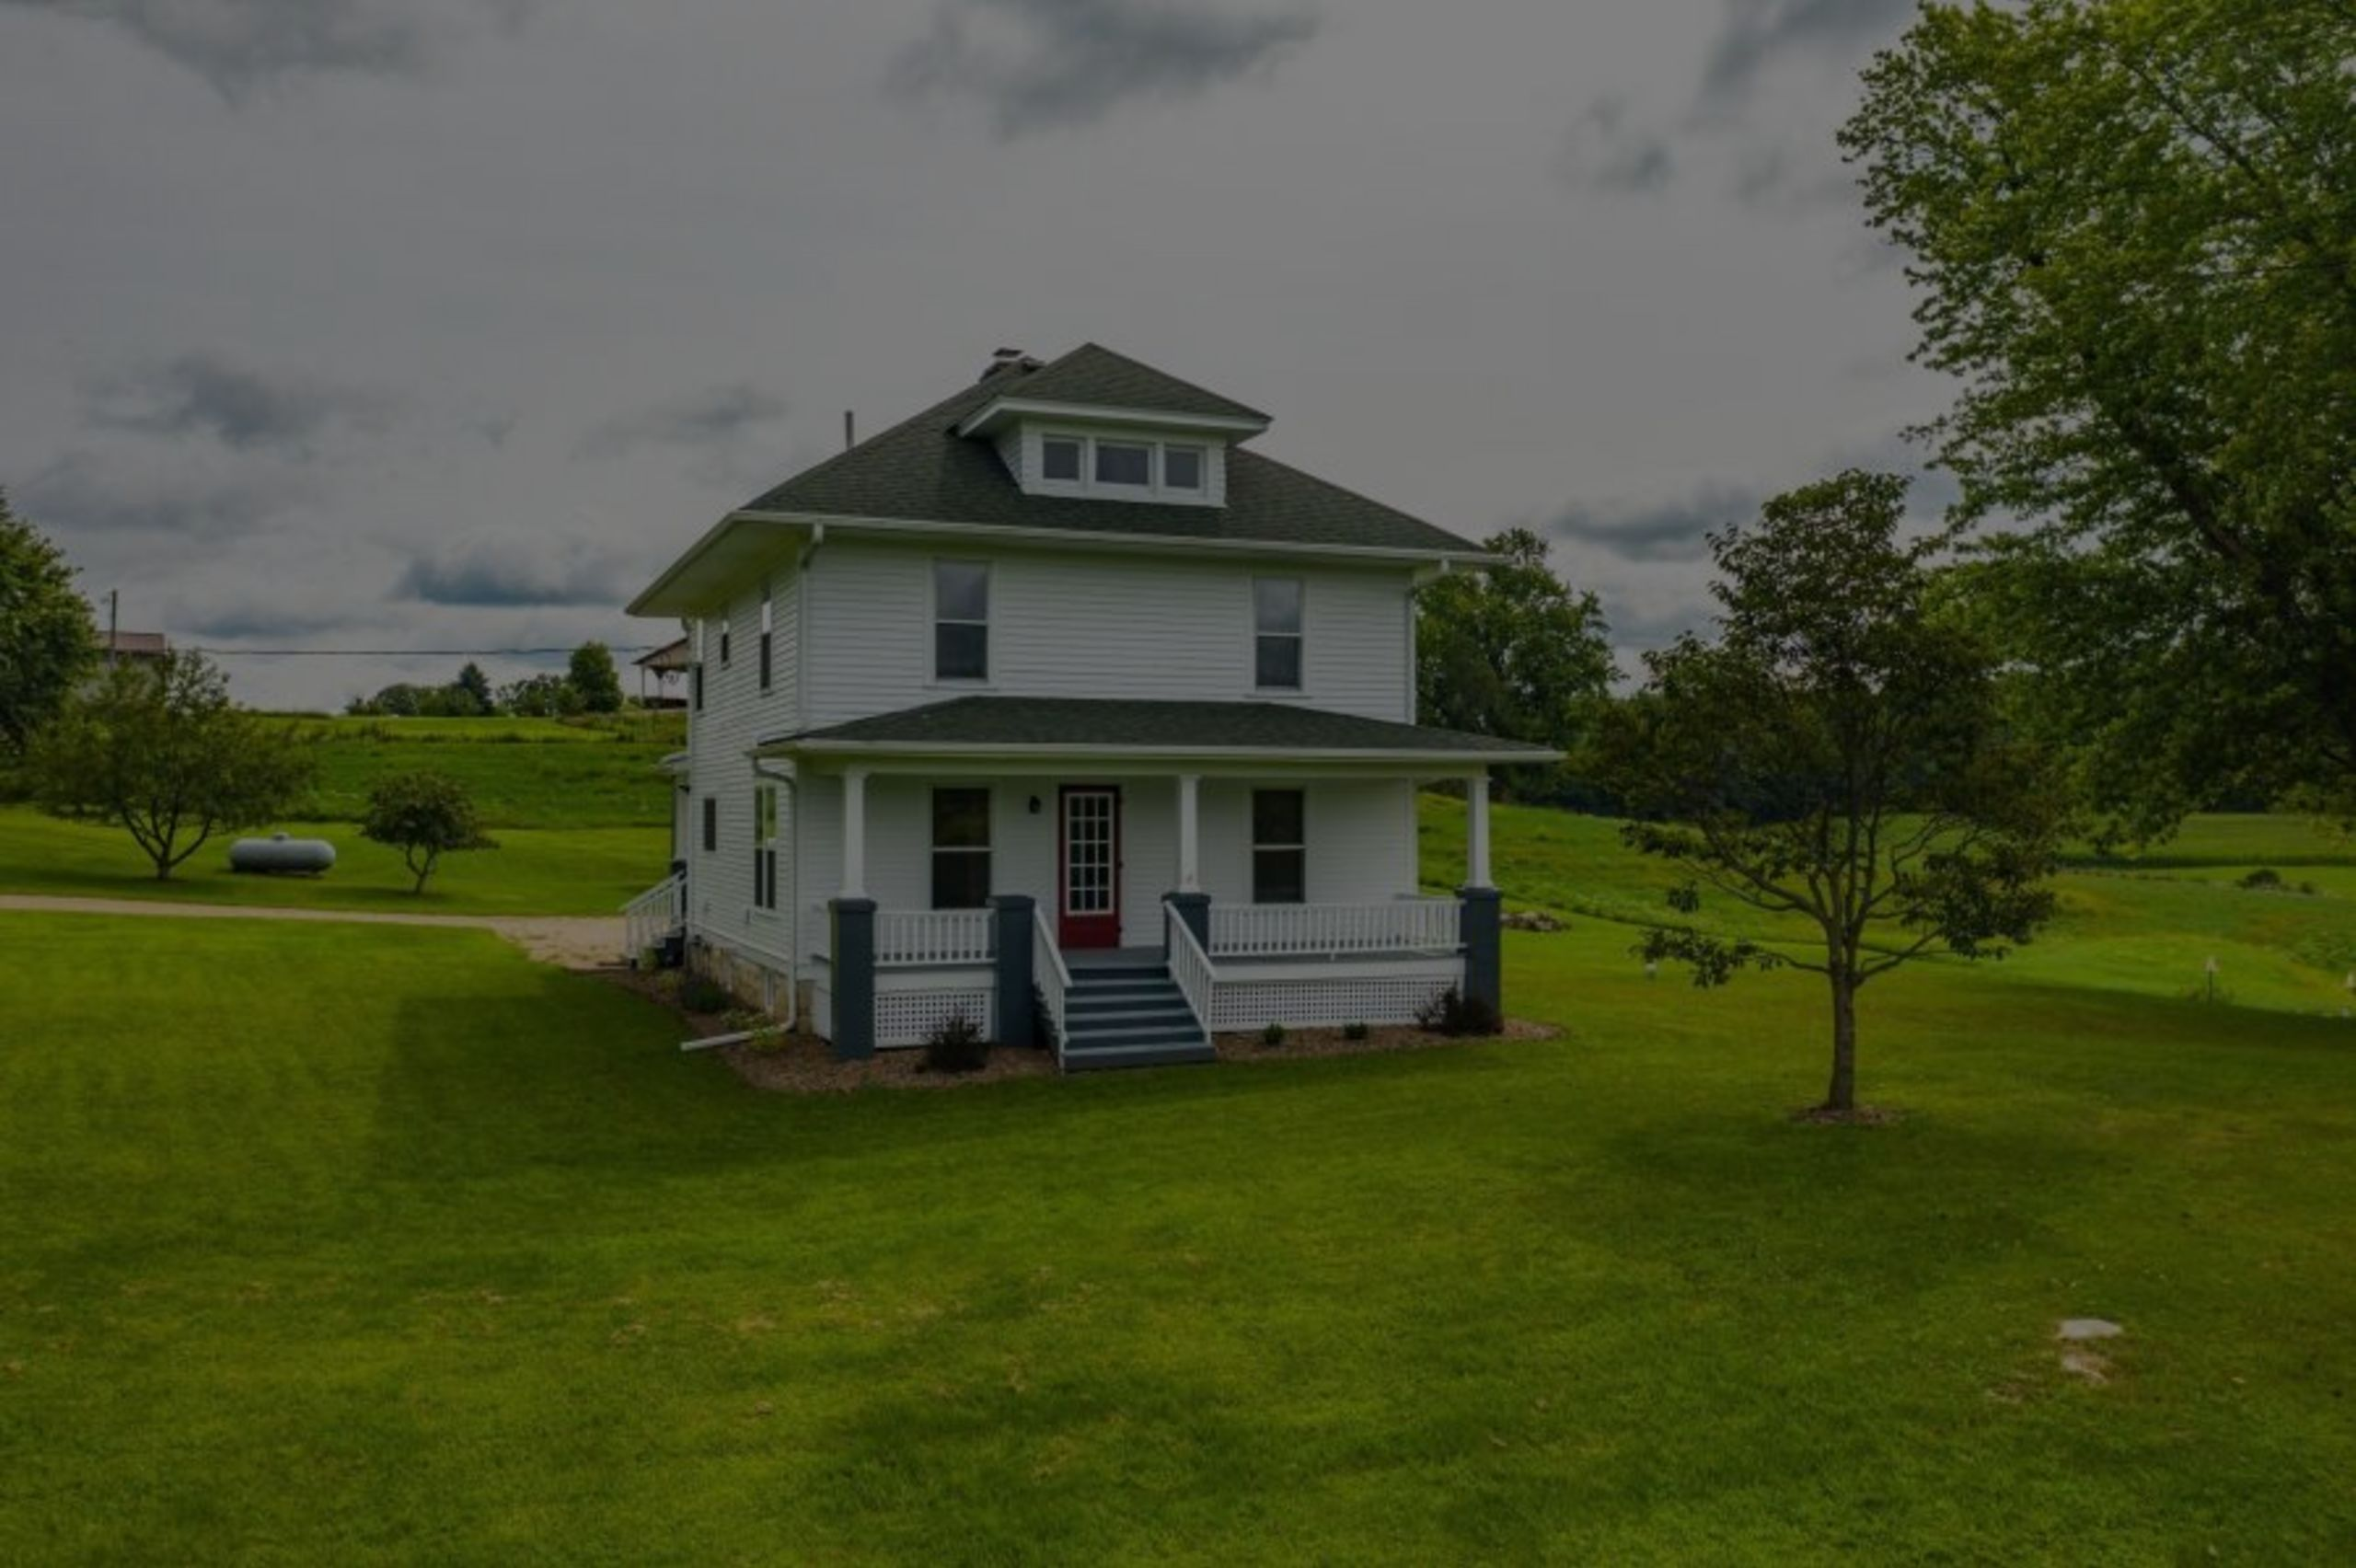 S7210 Cty Rd J, Viroqua ~ 6.5acres  $259,900